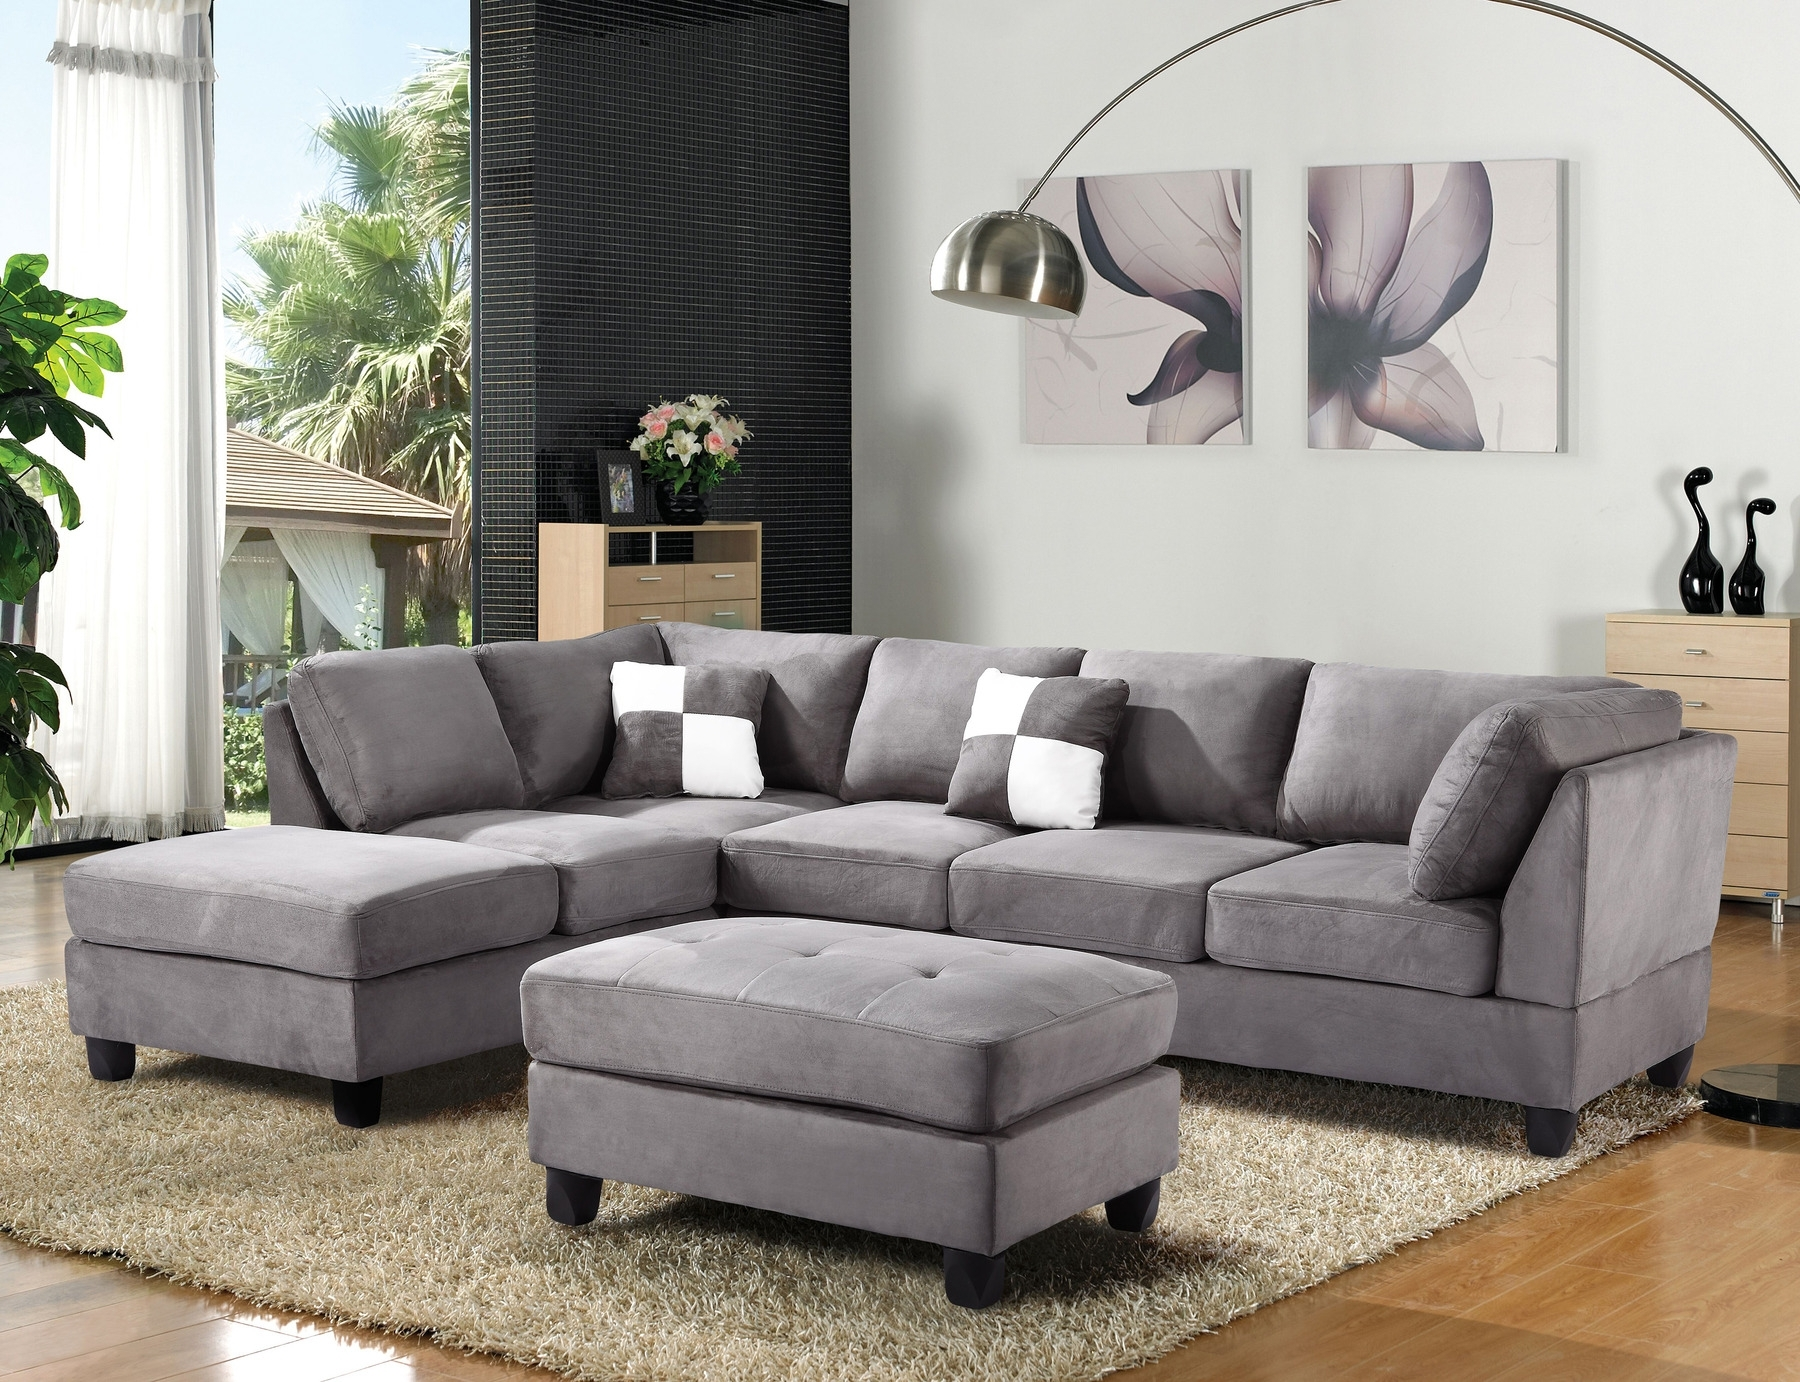 Light Gray Sectional Sofa Fabric Modern Grey Divani Casa Quebec With Regard To Quebec Sectional Sofas (Image 8 of 10)